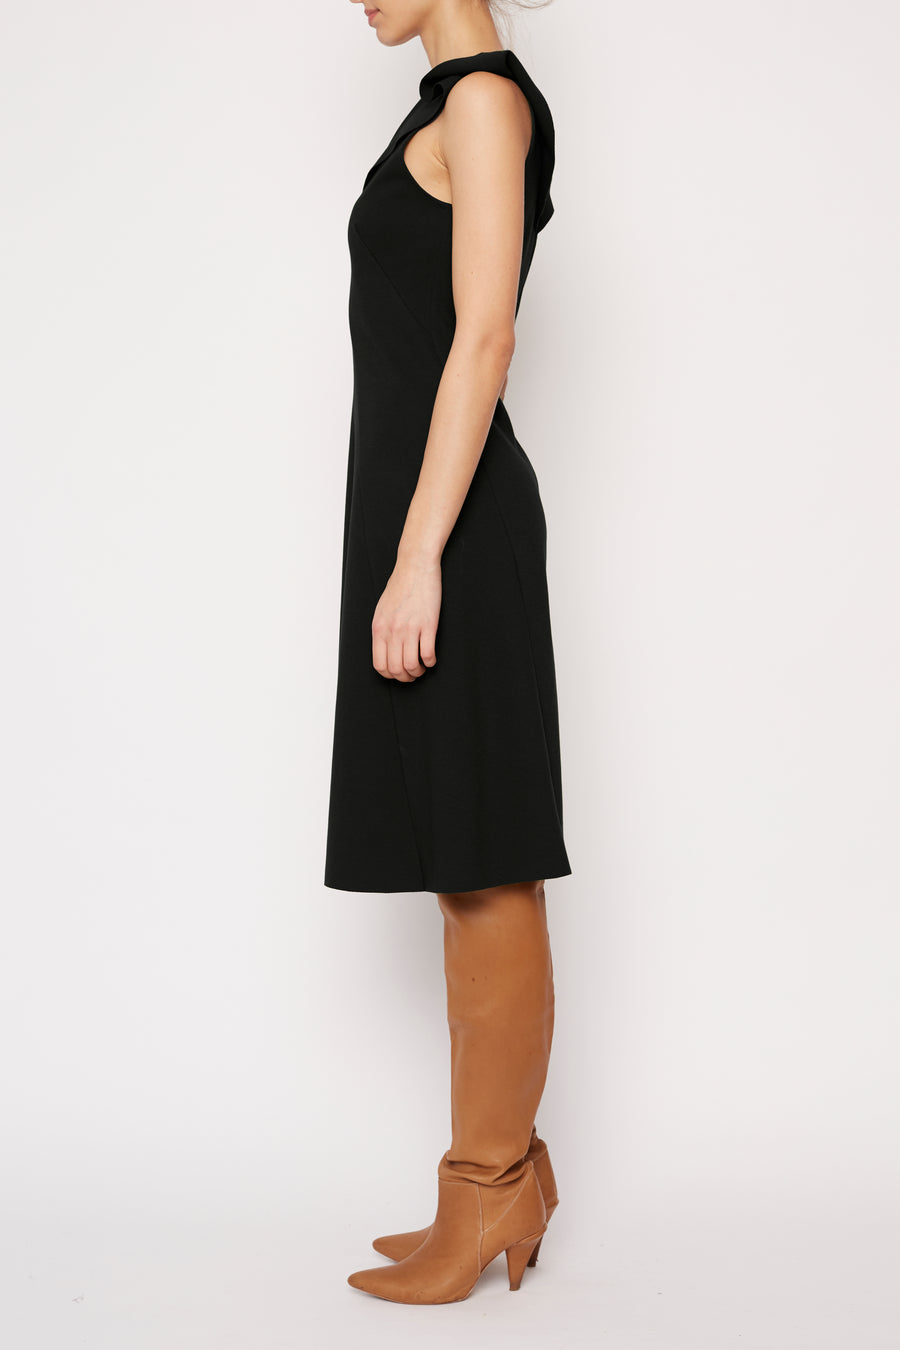 Green Future Dress - Black